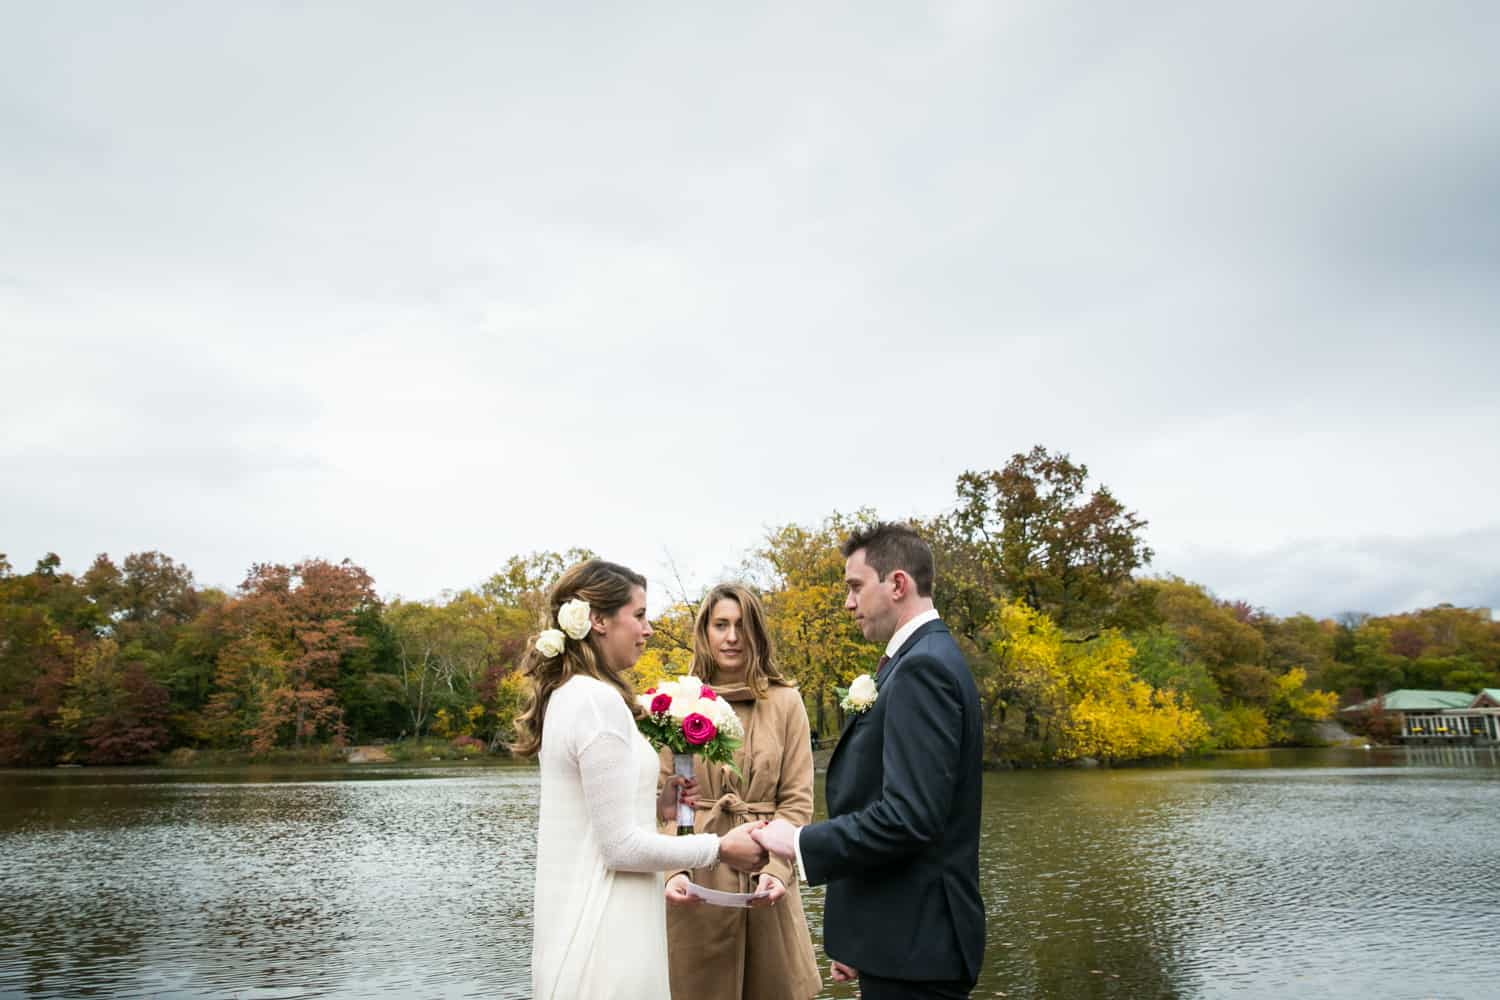 Bride and groom exchanging vows at a Bethesda Fountain wedding in Central Park